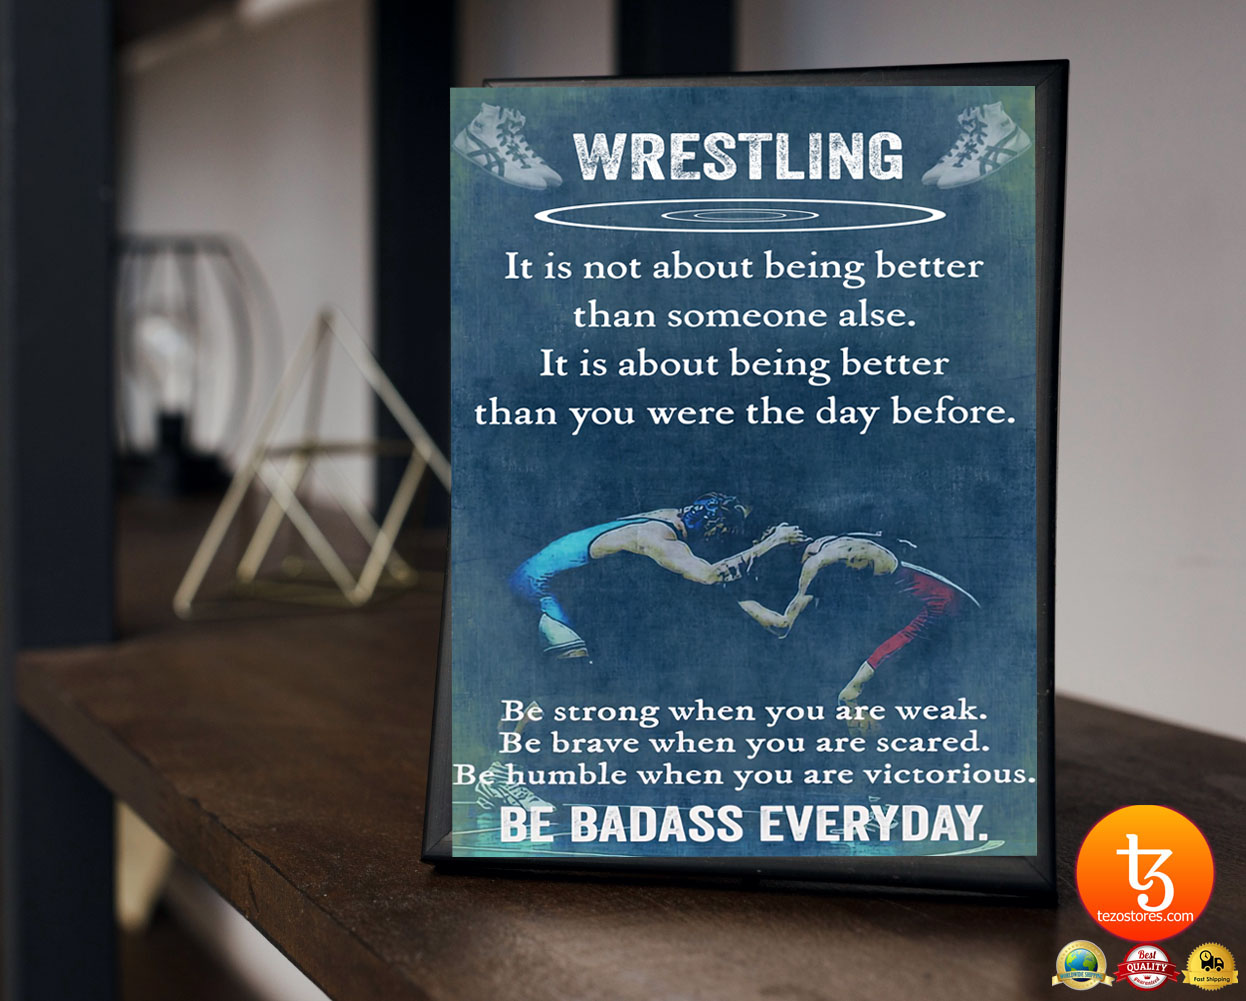 Wrestling it is not about being better than someine else poster 23